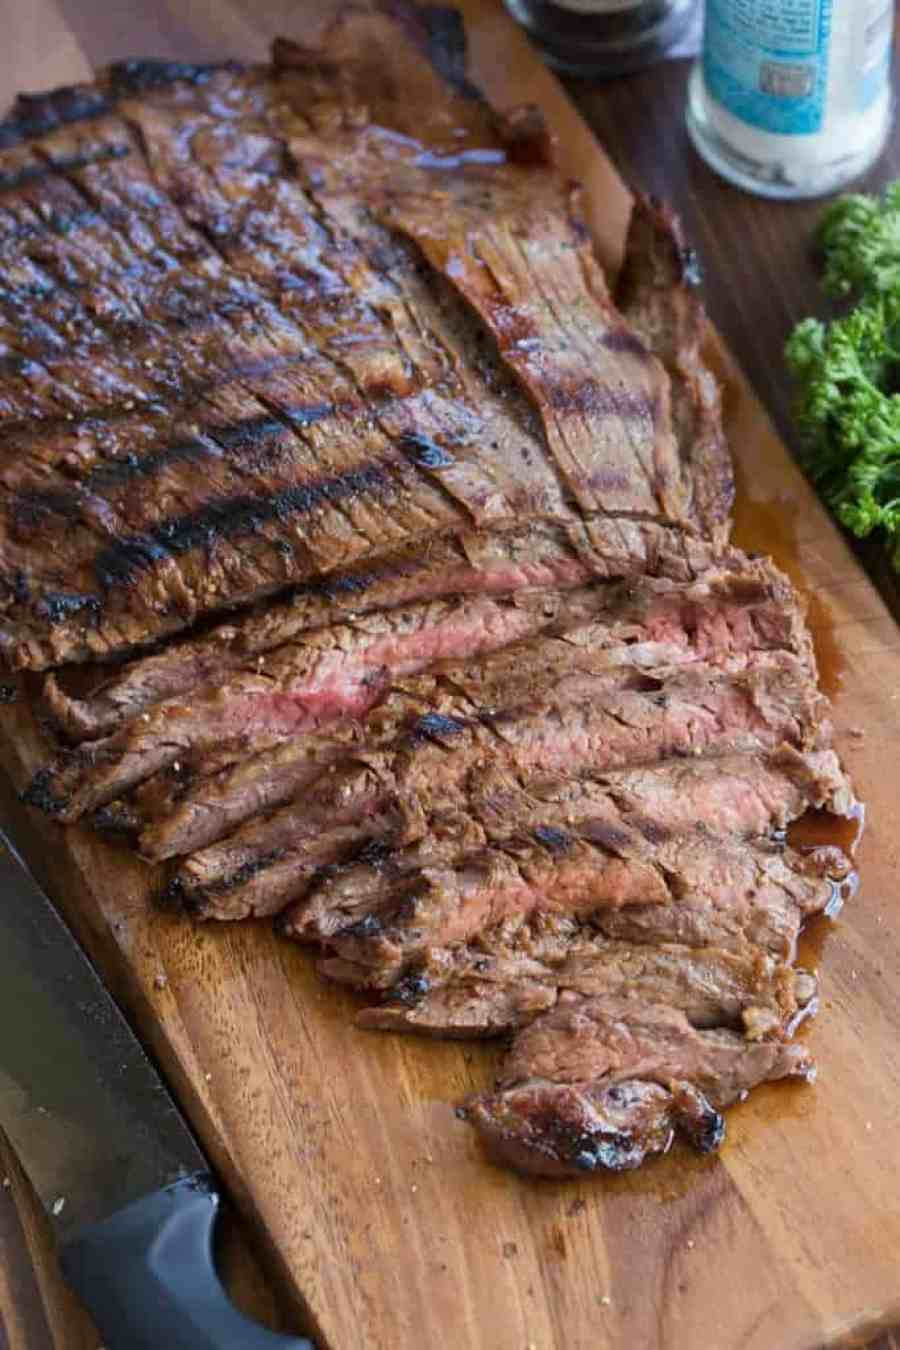 The BEST, easiest marinated flank steak recipe. The recipe has been in my family for decades and is seriously the BEST! | tastesbetterfromscratch.com